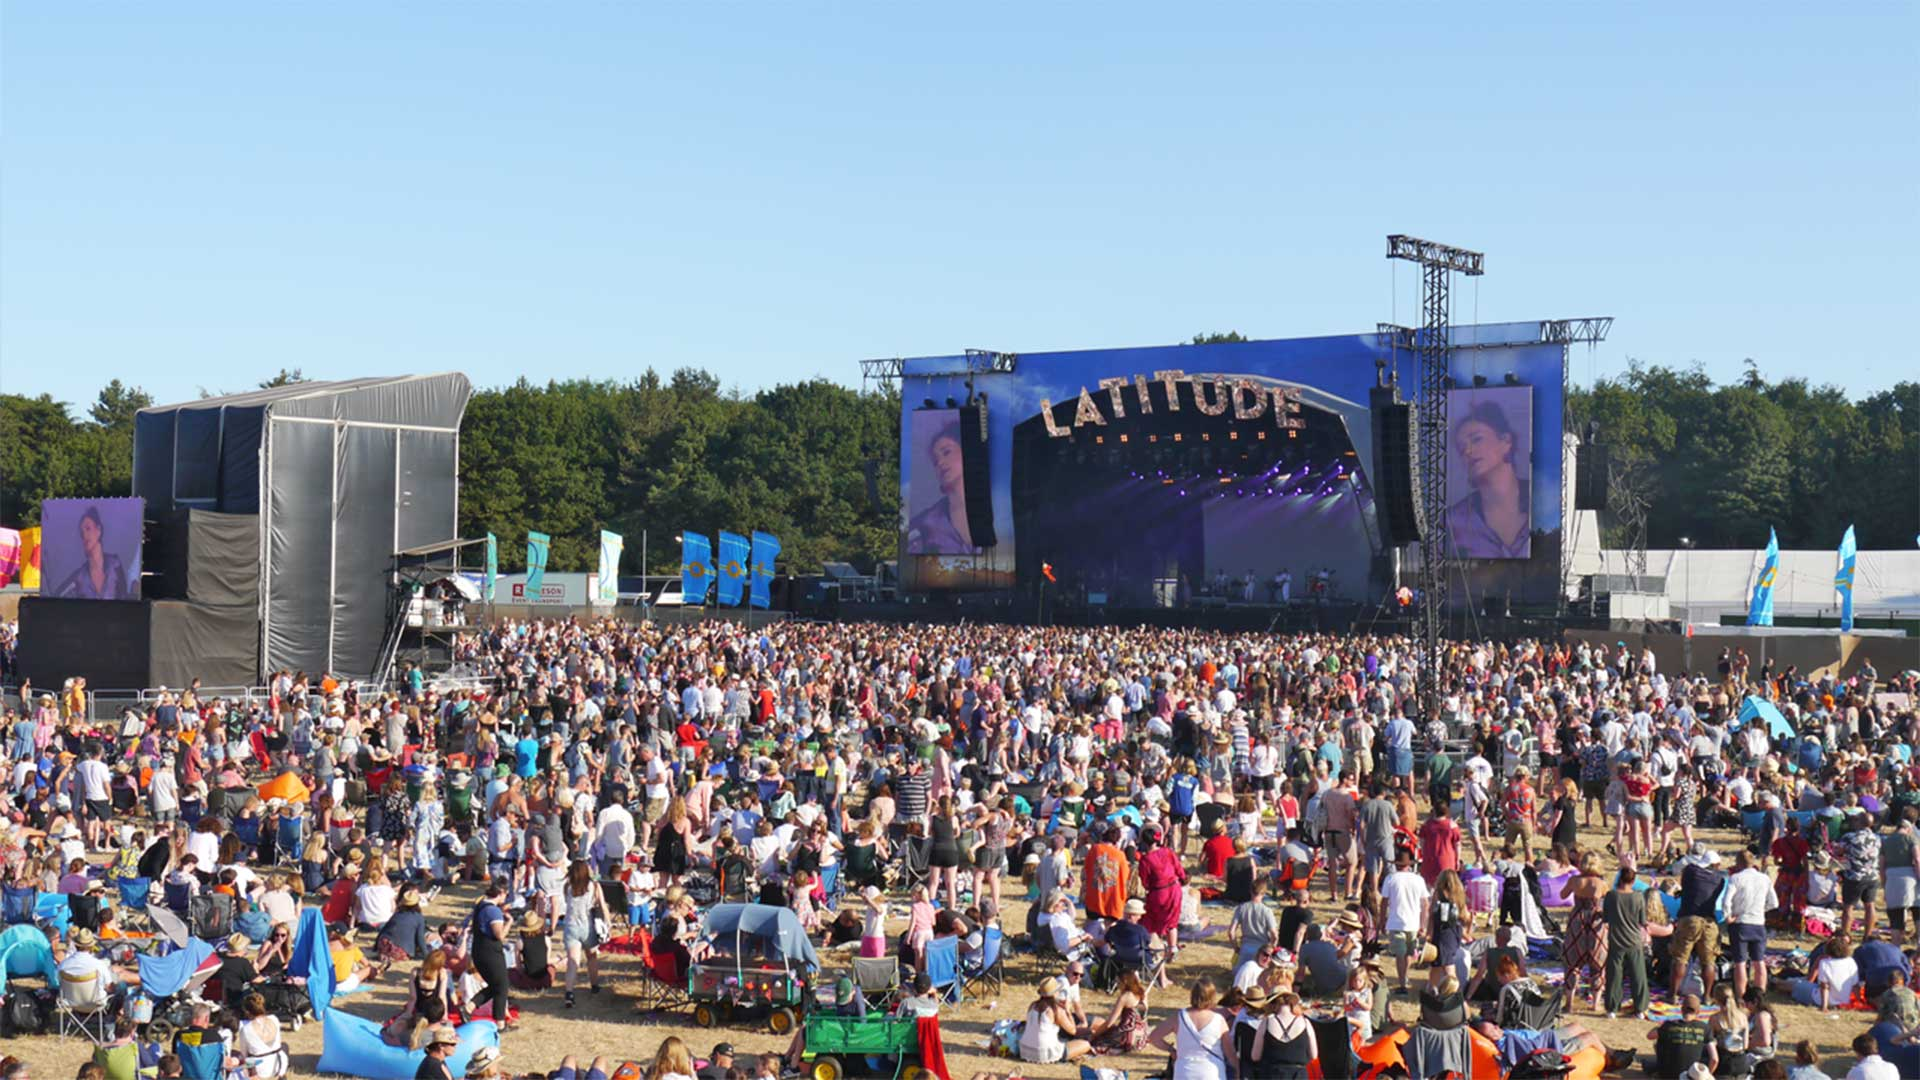 photo of Latitude Festival 2018